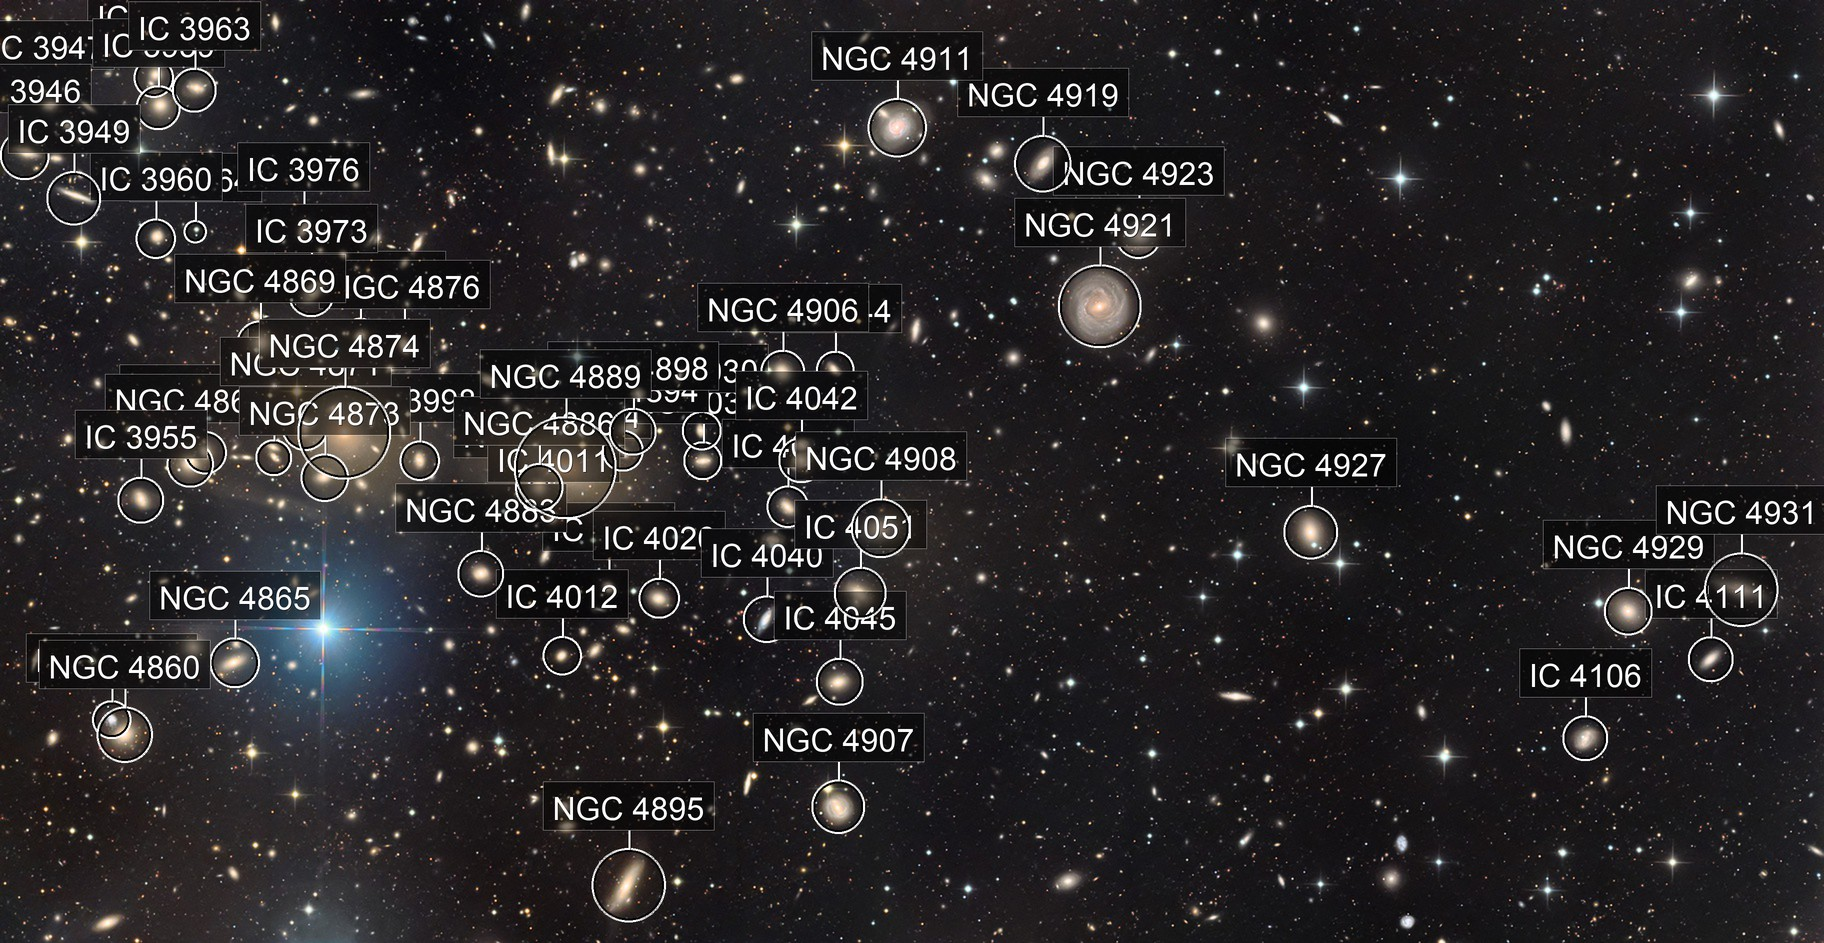 The Coma Cluster